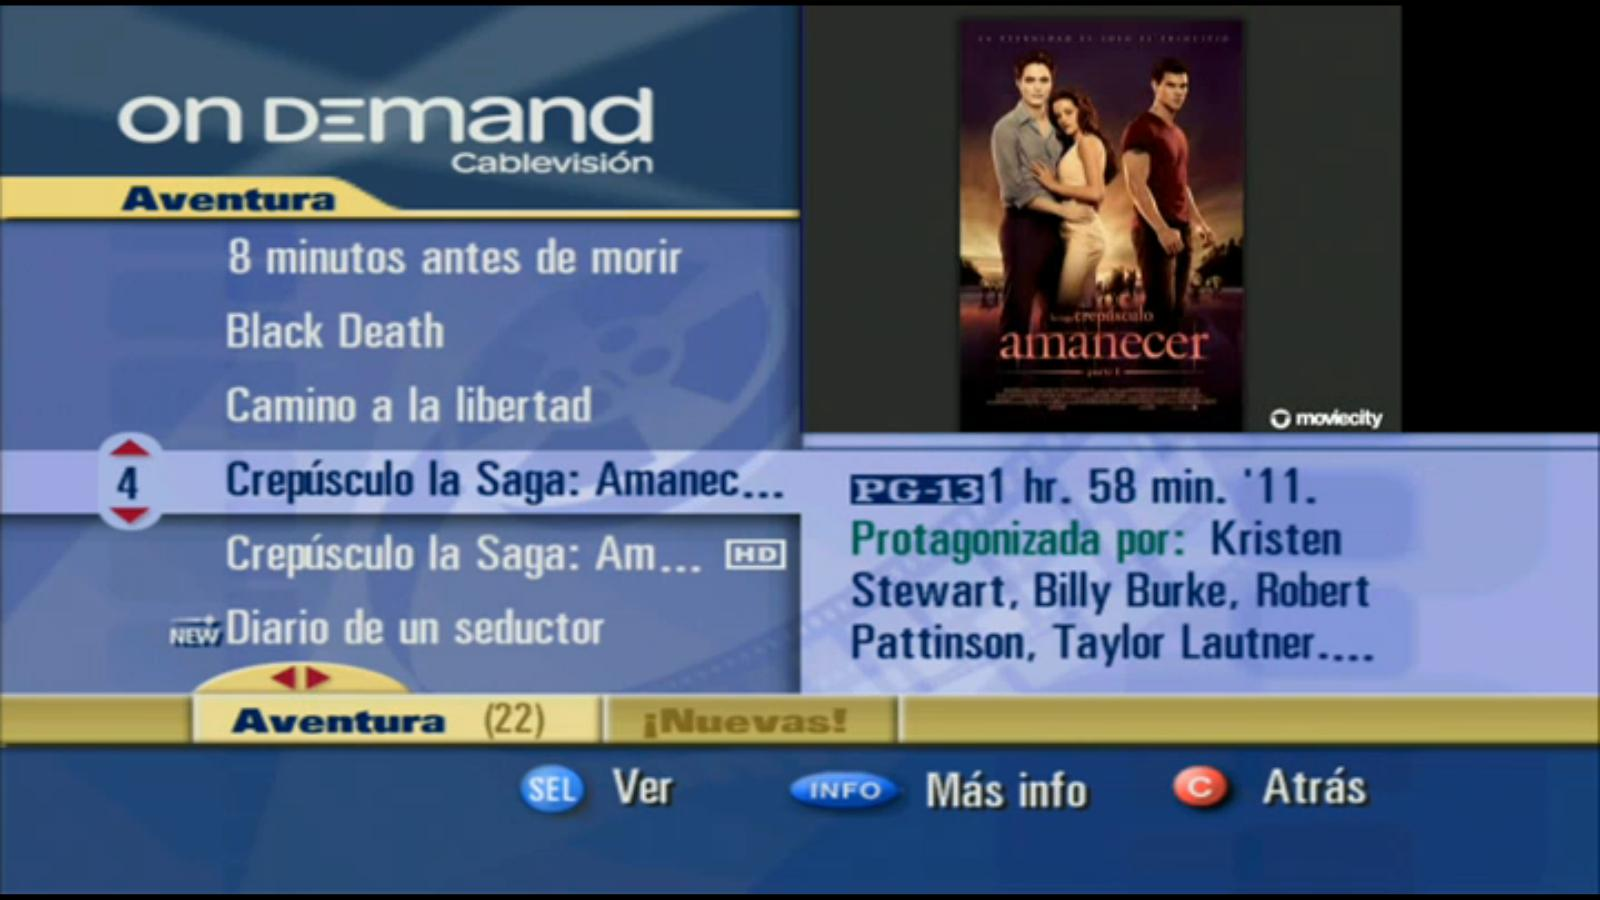 on demand cablevision